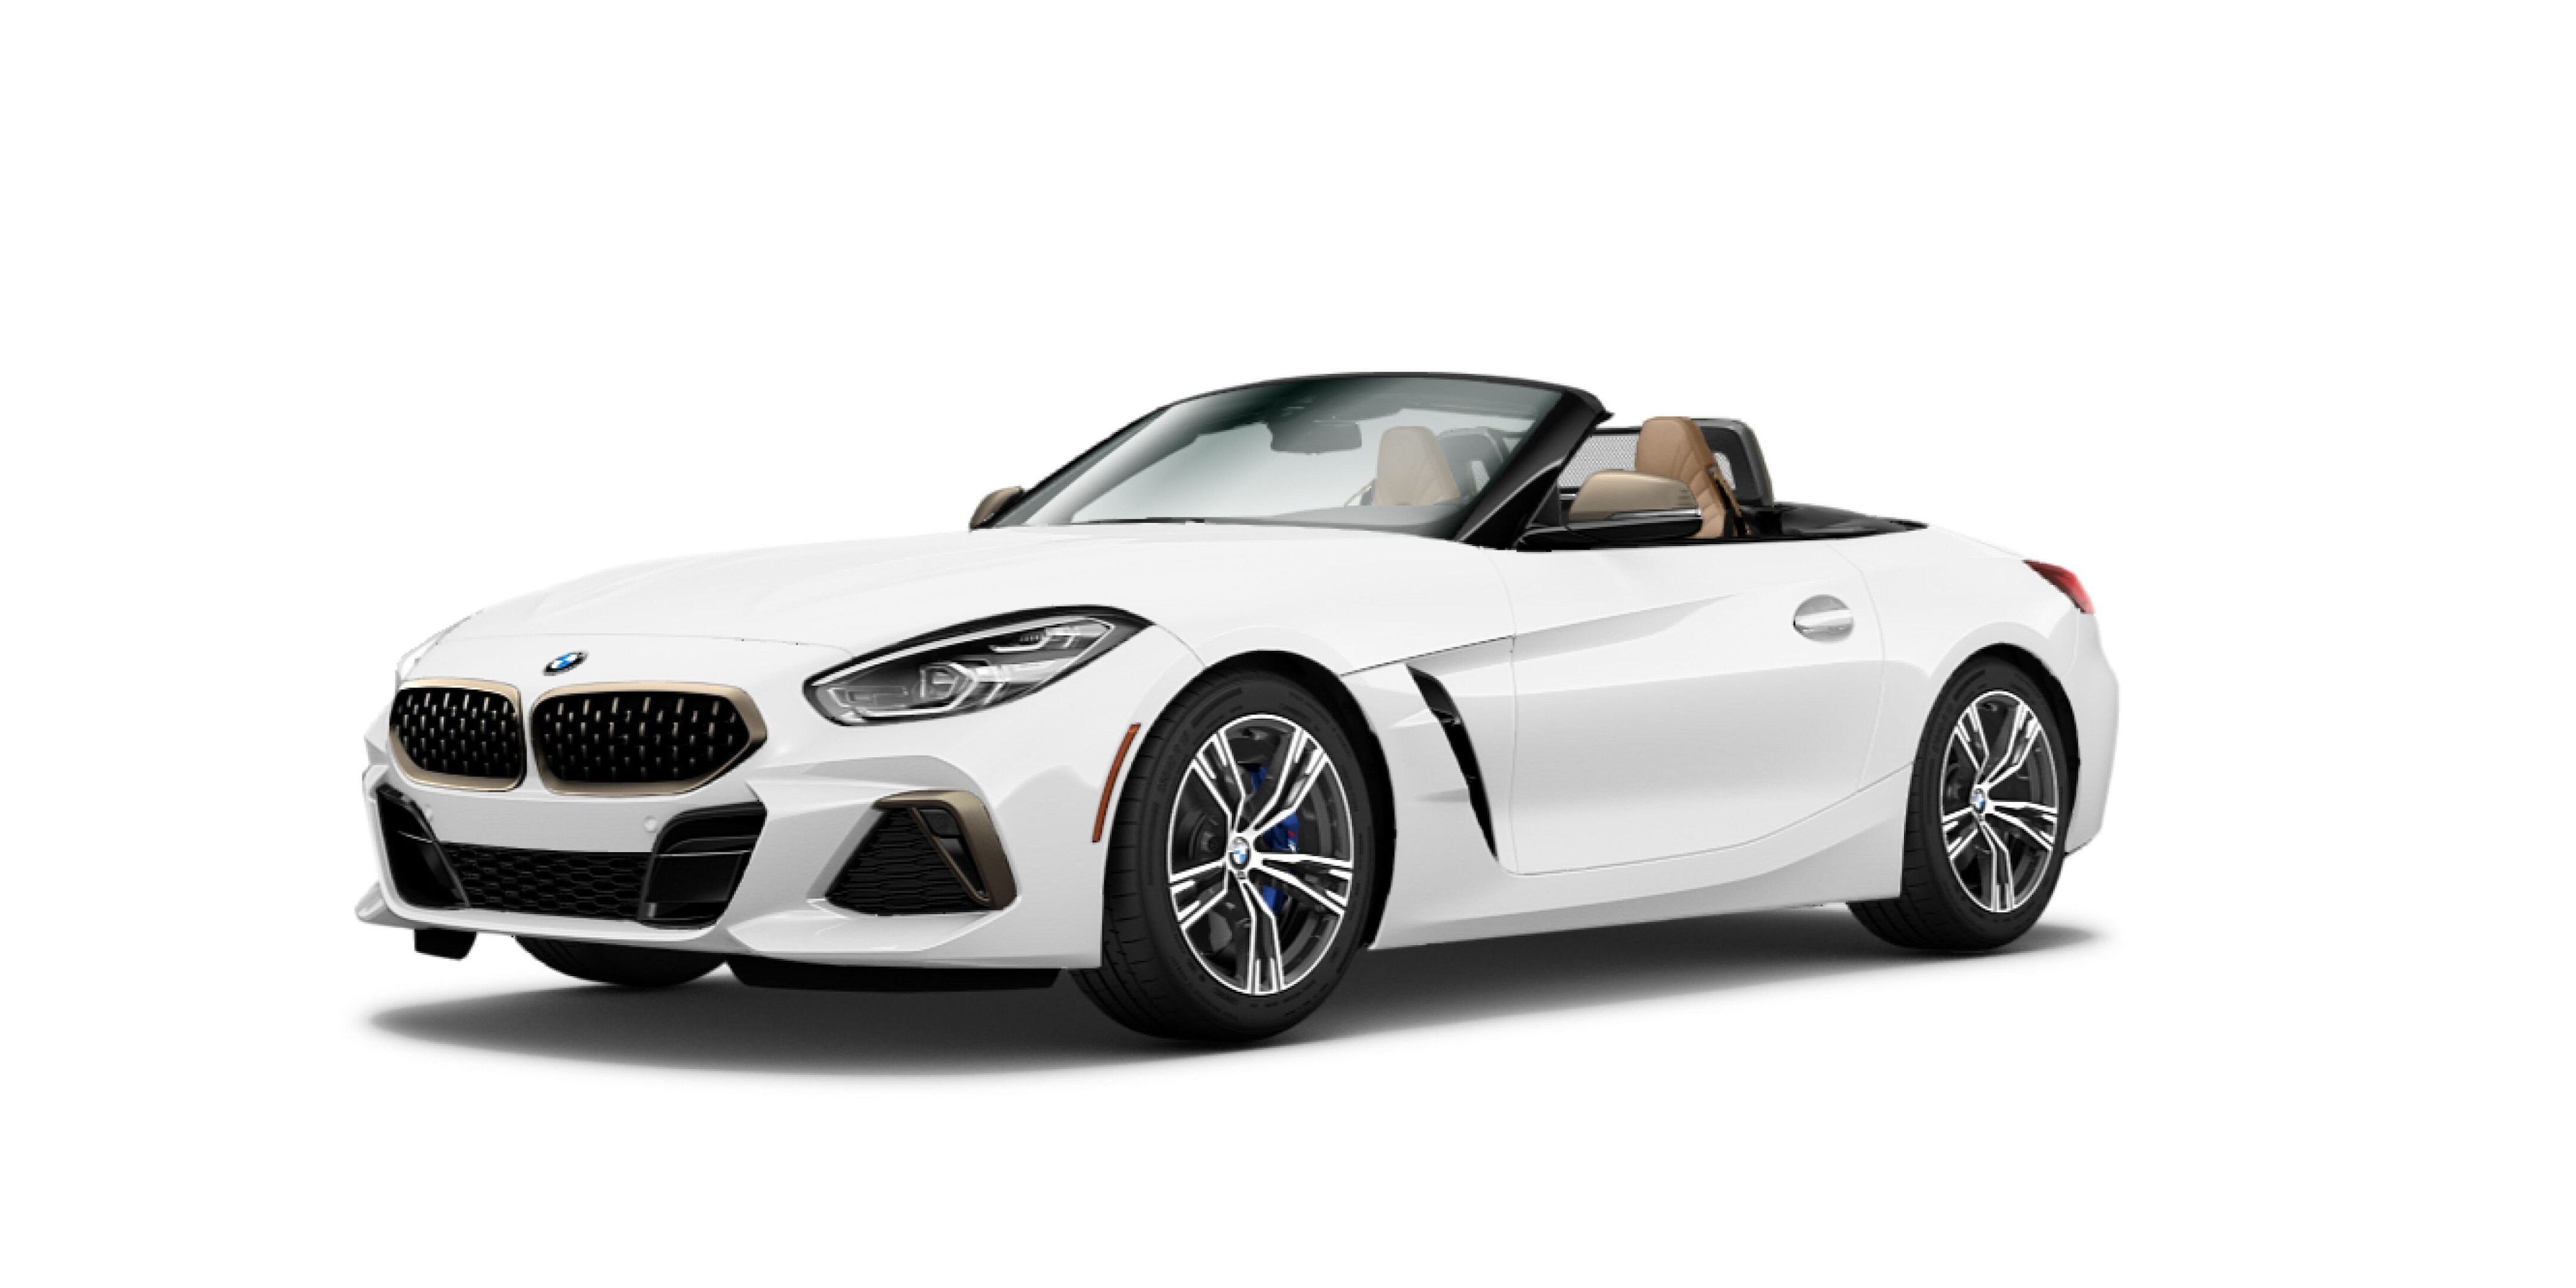 2020 Bmw Z4 M40i Convertible For Sale In Fort Lauderdale